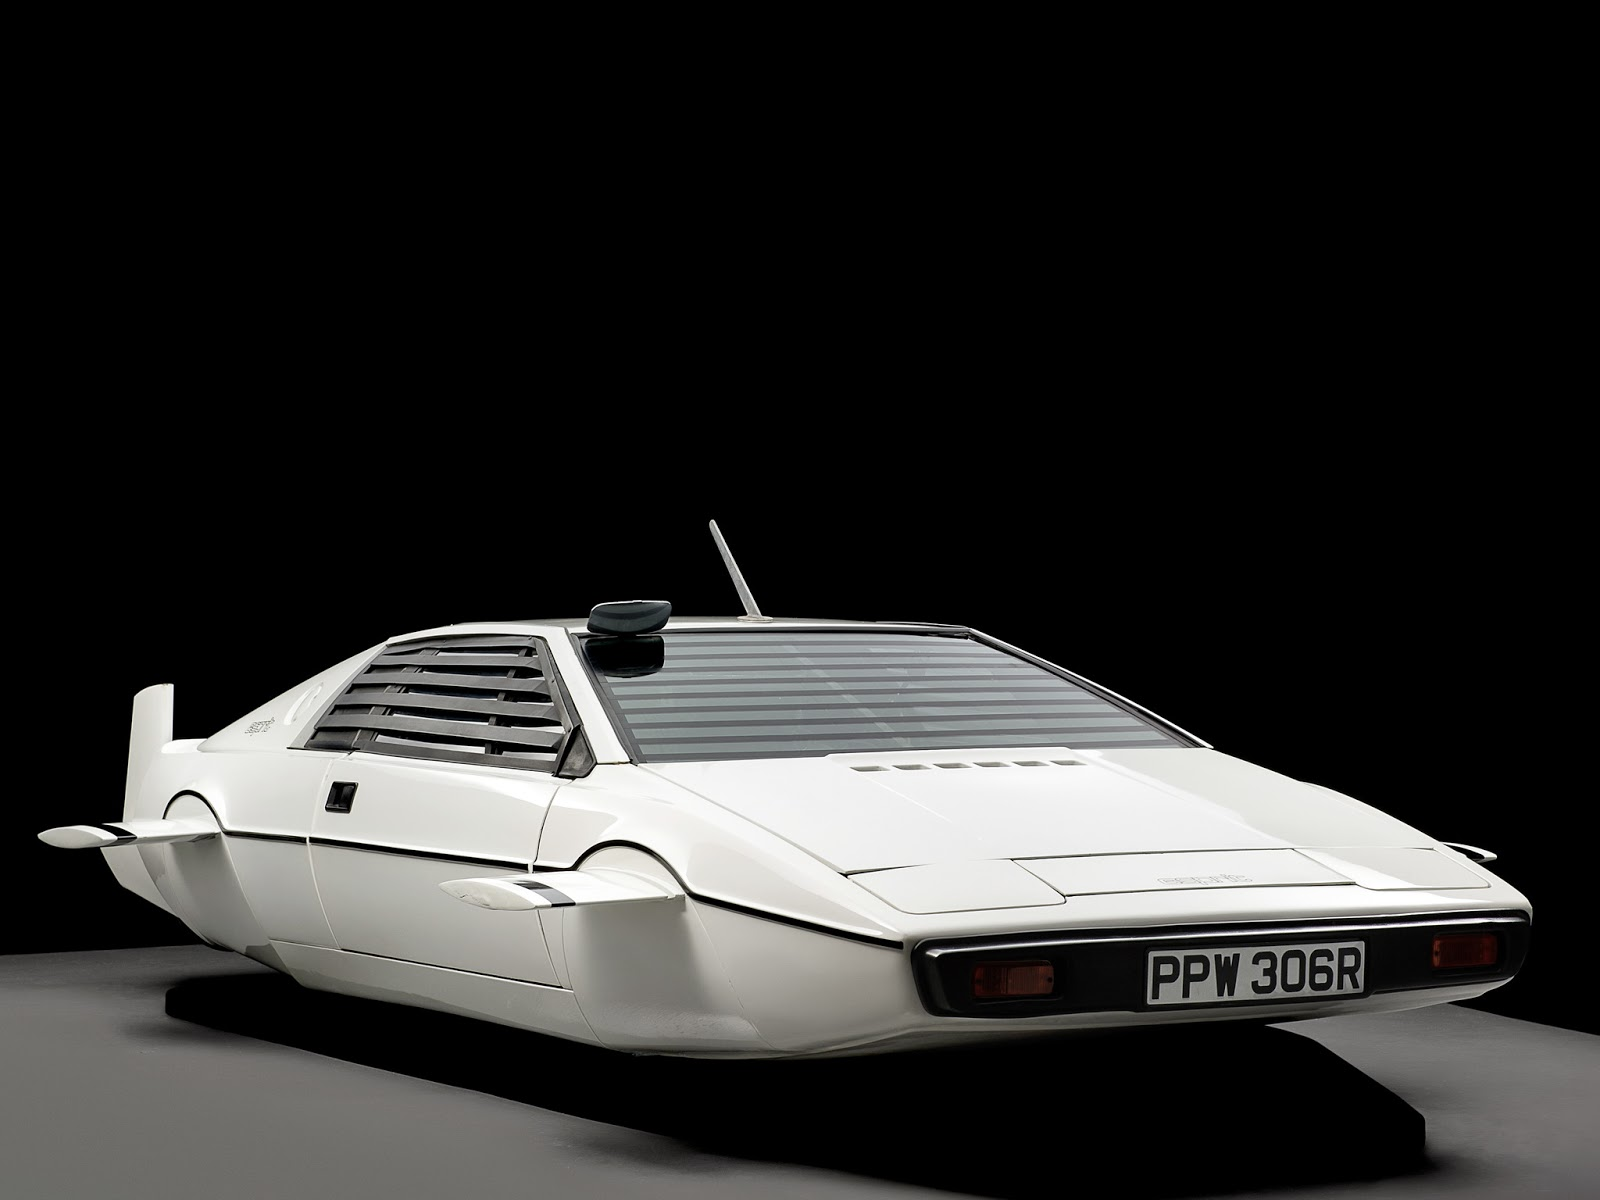 lotus_esprit_007_the_spy_who_loved_me_4